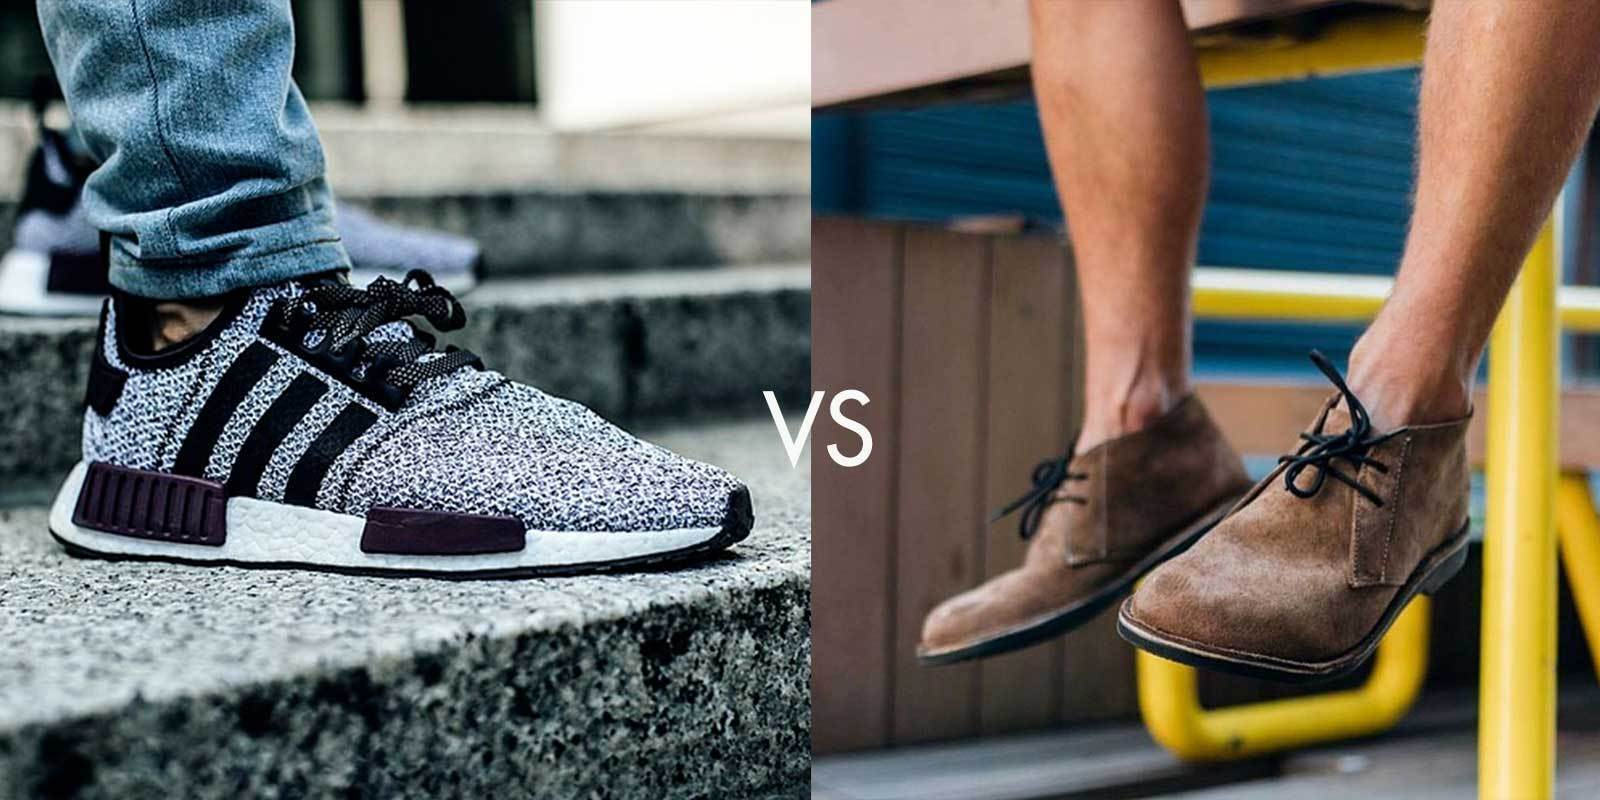 The Chukka boot VS the Sneaker: Veldskoen